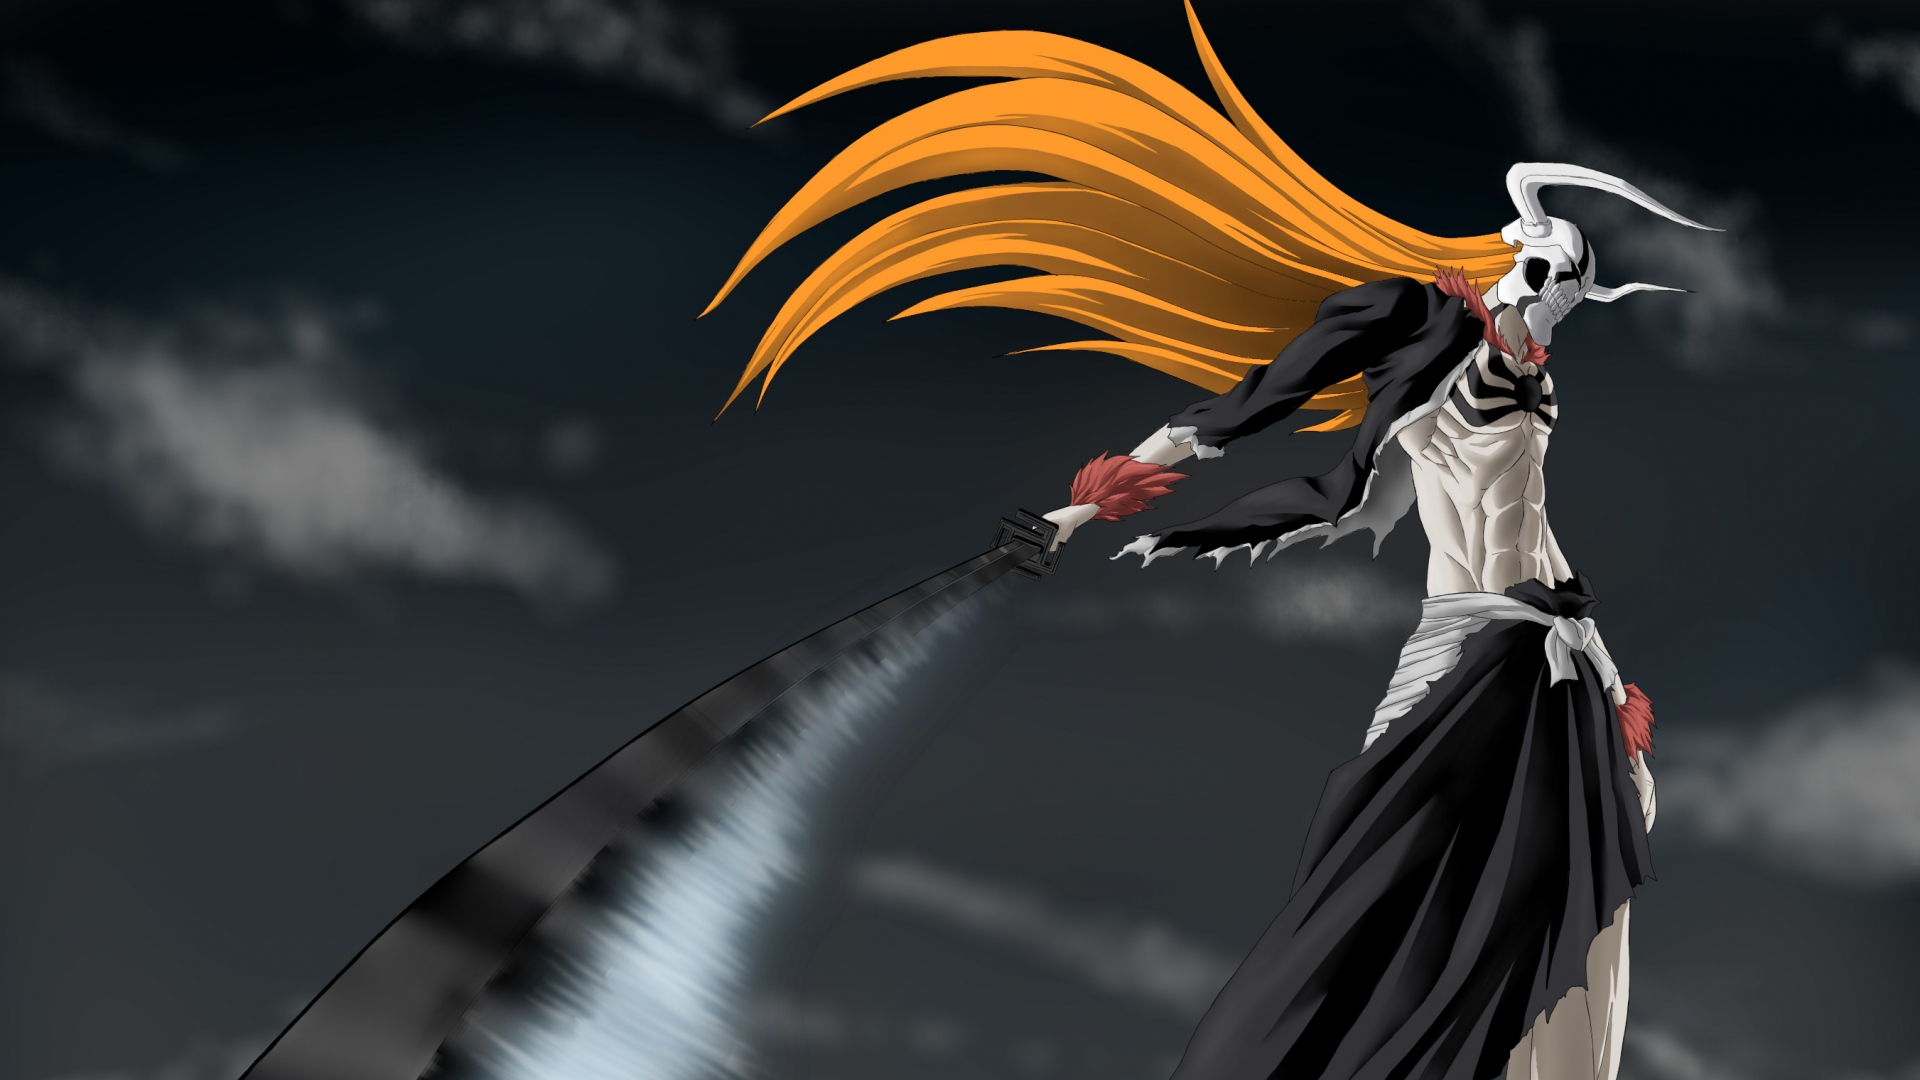 Anime-bleach-HD-backgrounds-free-wallpaper-wpc9002253